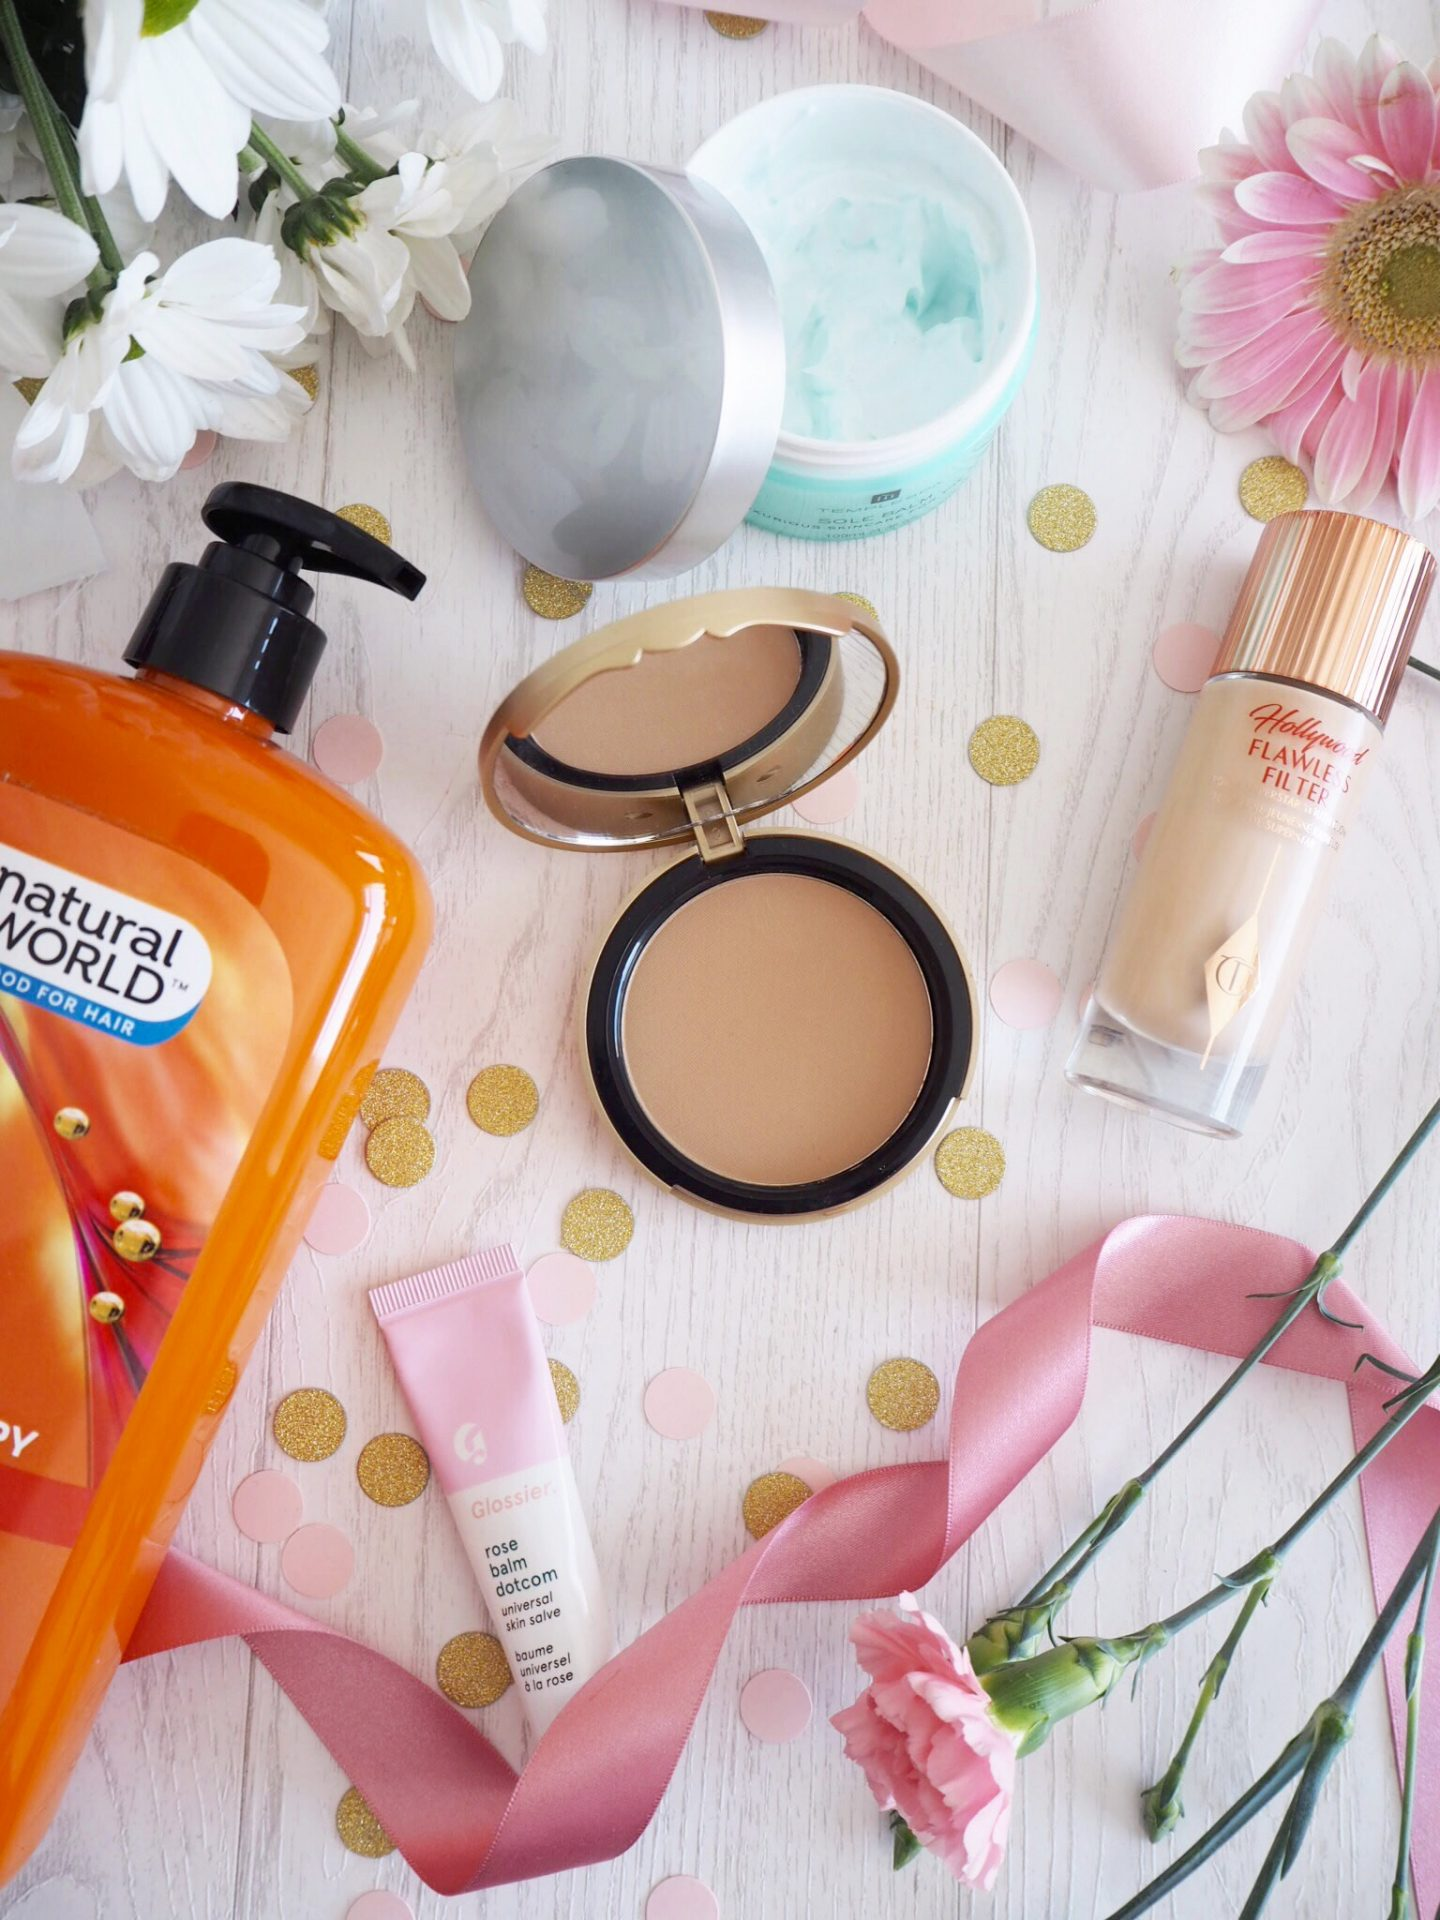 Beauty Favourites skincare makeup temple Spa too faced bronzer shampoo conditioner glossier balm dot com